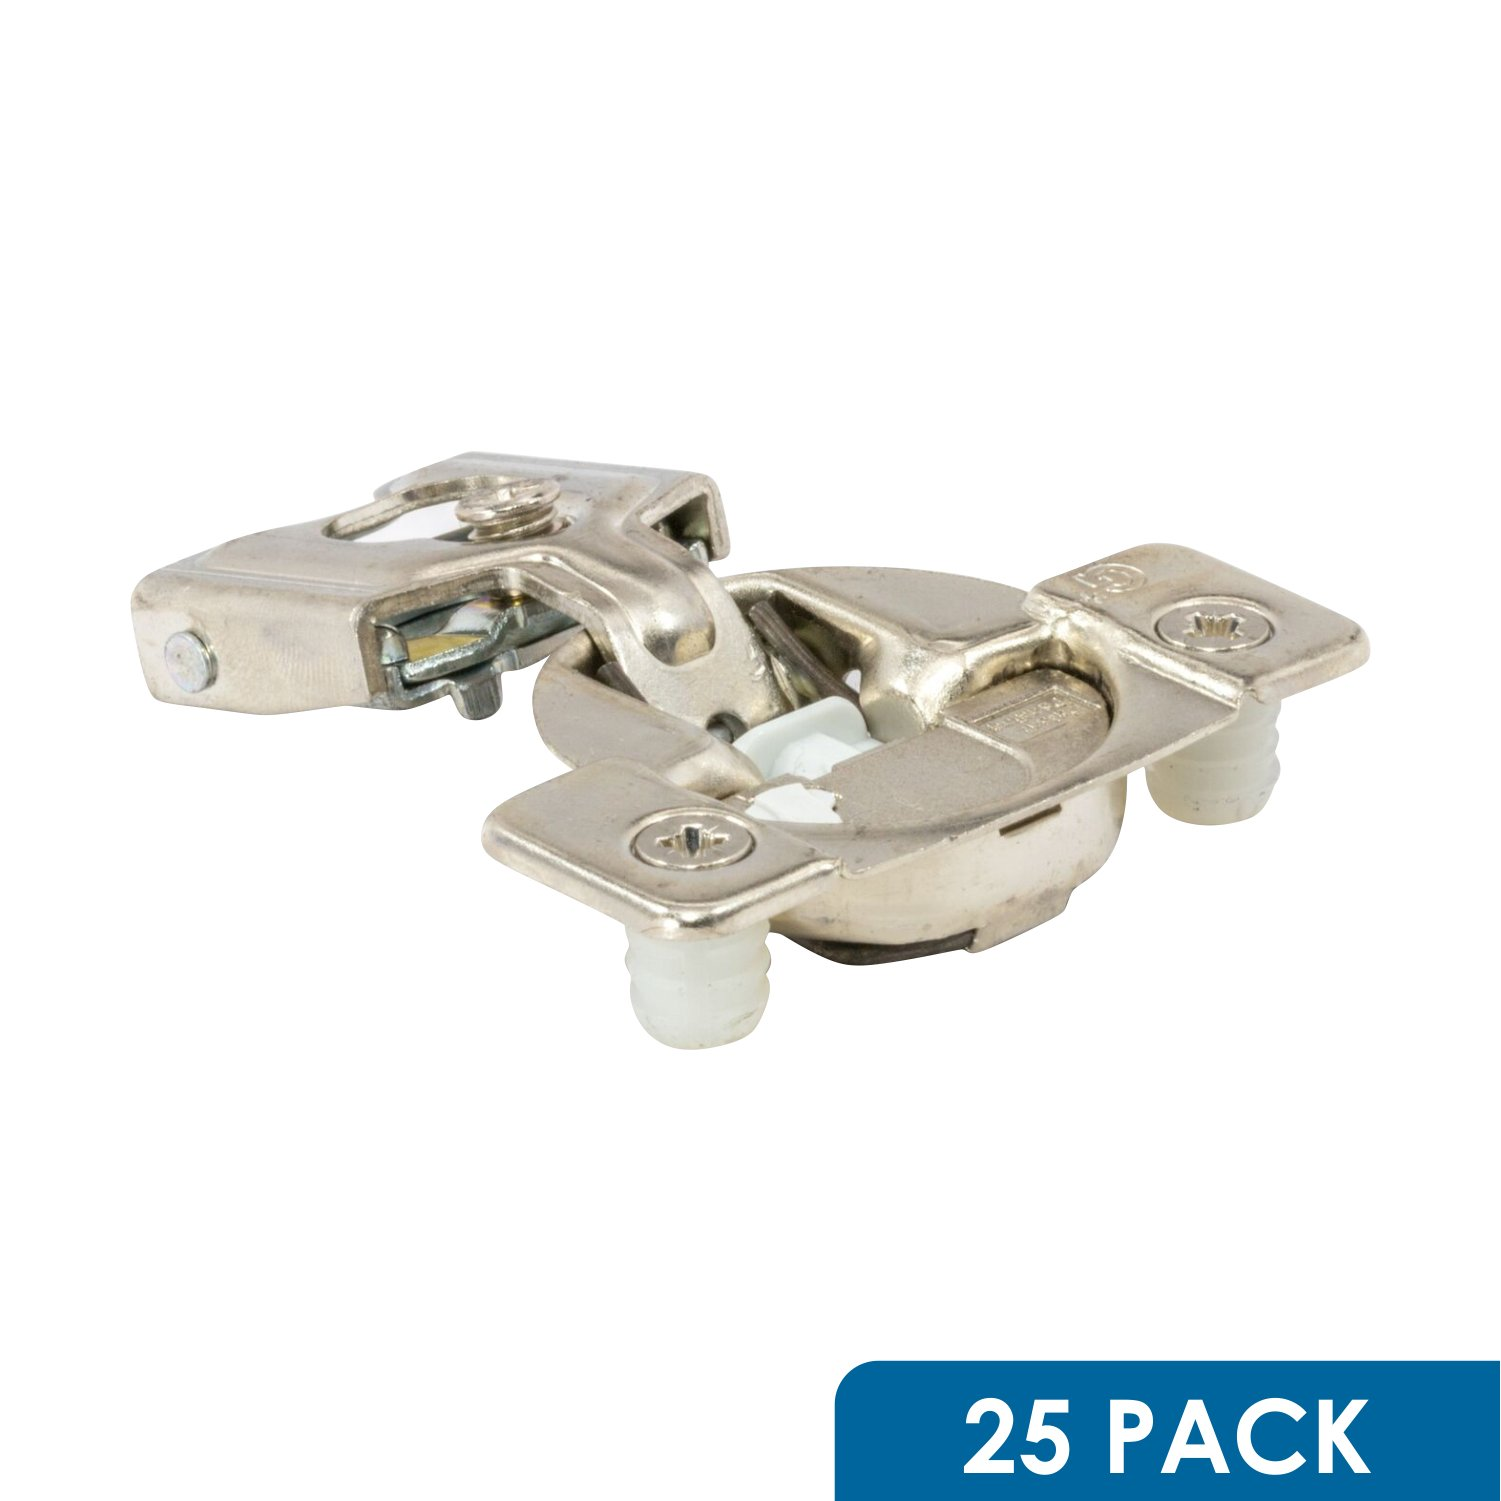 25 Pack Rok Hardware Grass TEC 108 Degree 1/2'' Overlay Soft Close Press in Compact Edge Mount Cabinet Hinge 02749A-15 3-Way Adjustment 42mm Screw Hole Pattern by Rok